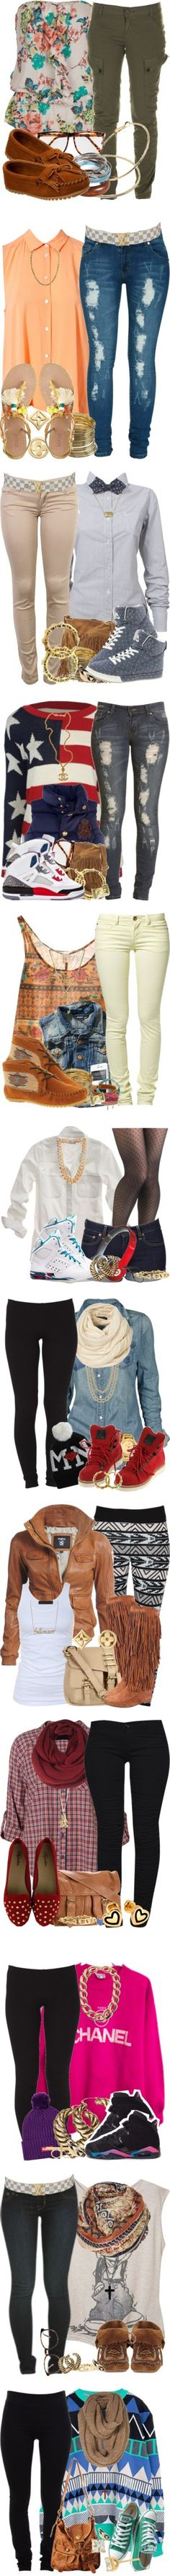 """""""Swag Outfits !"""" by nikki-liburd ❤ liked on Polyvore"""